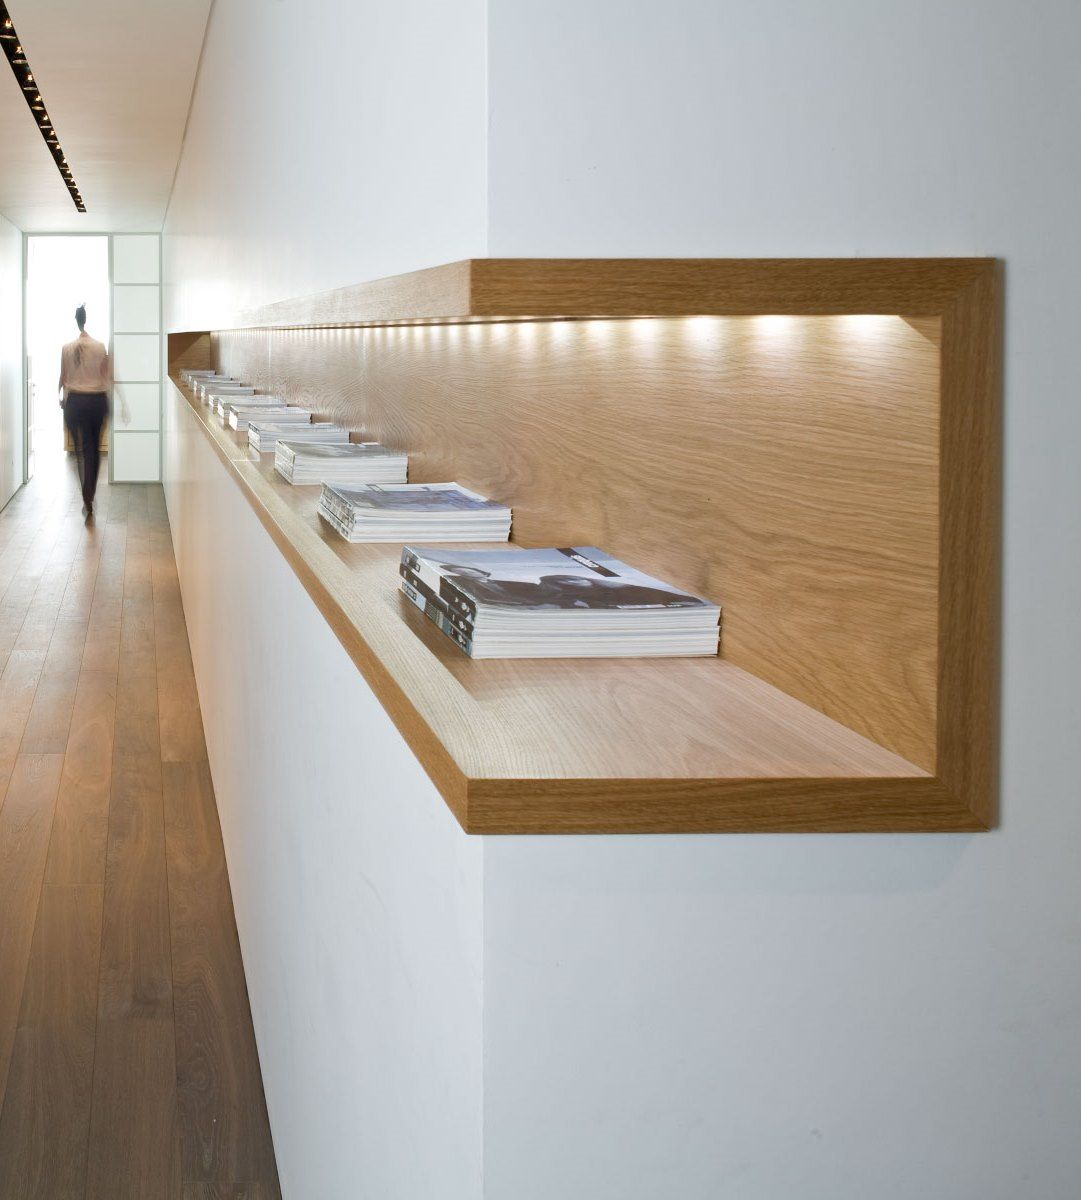 Interior Architecture Wood Shelf With In Built Light